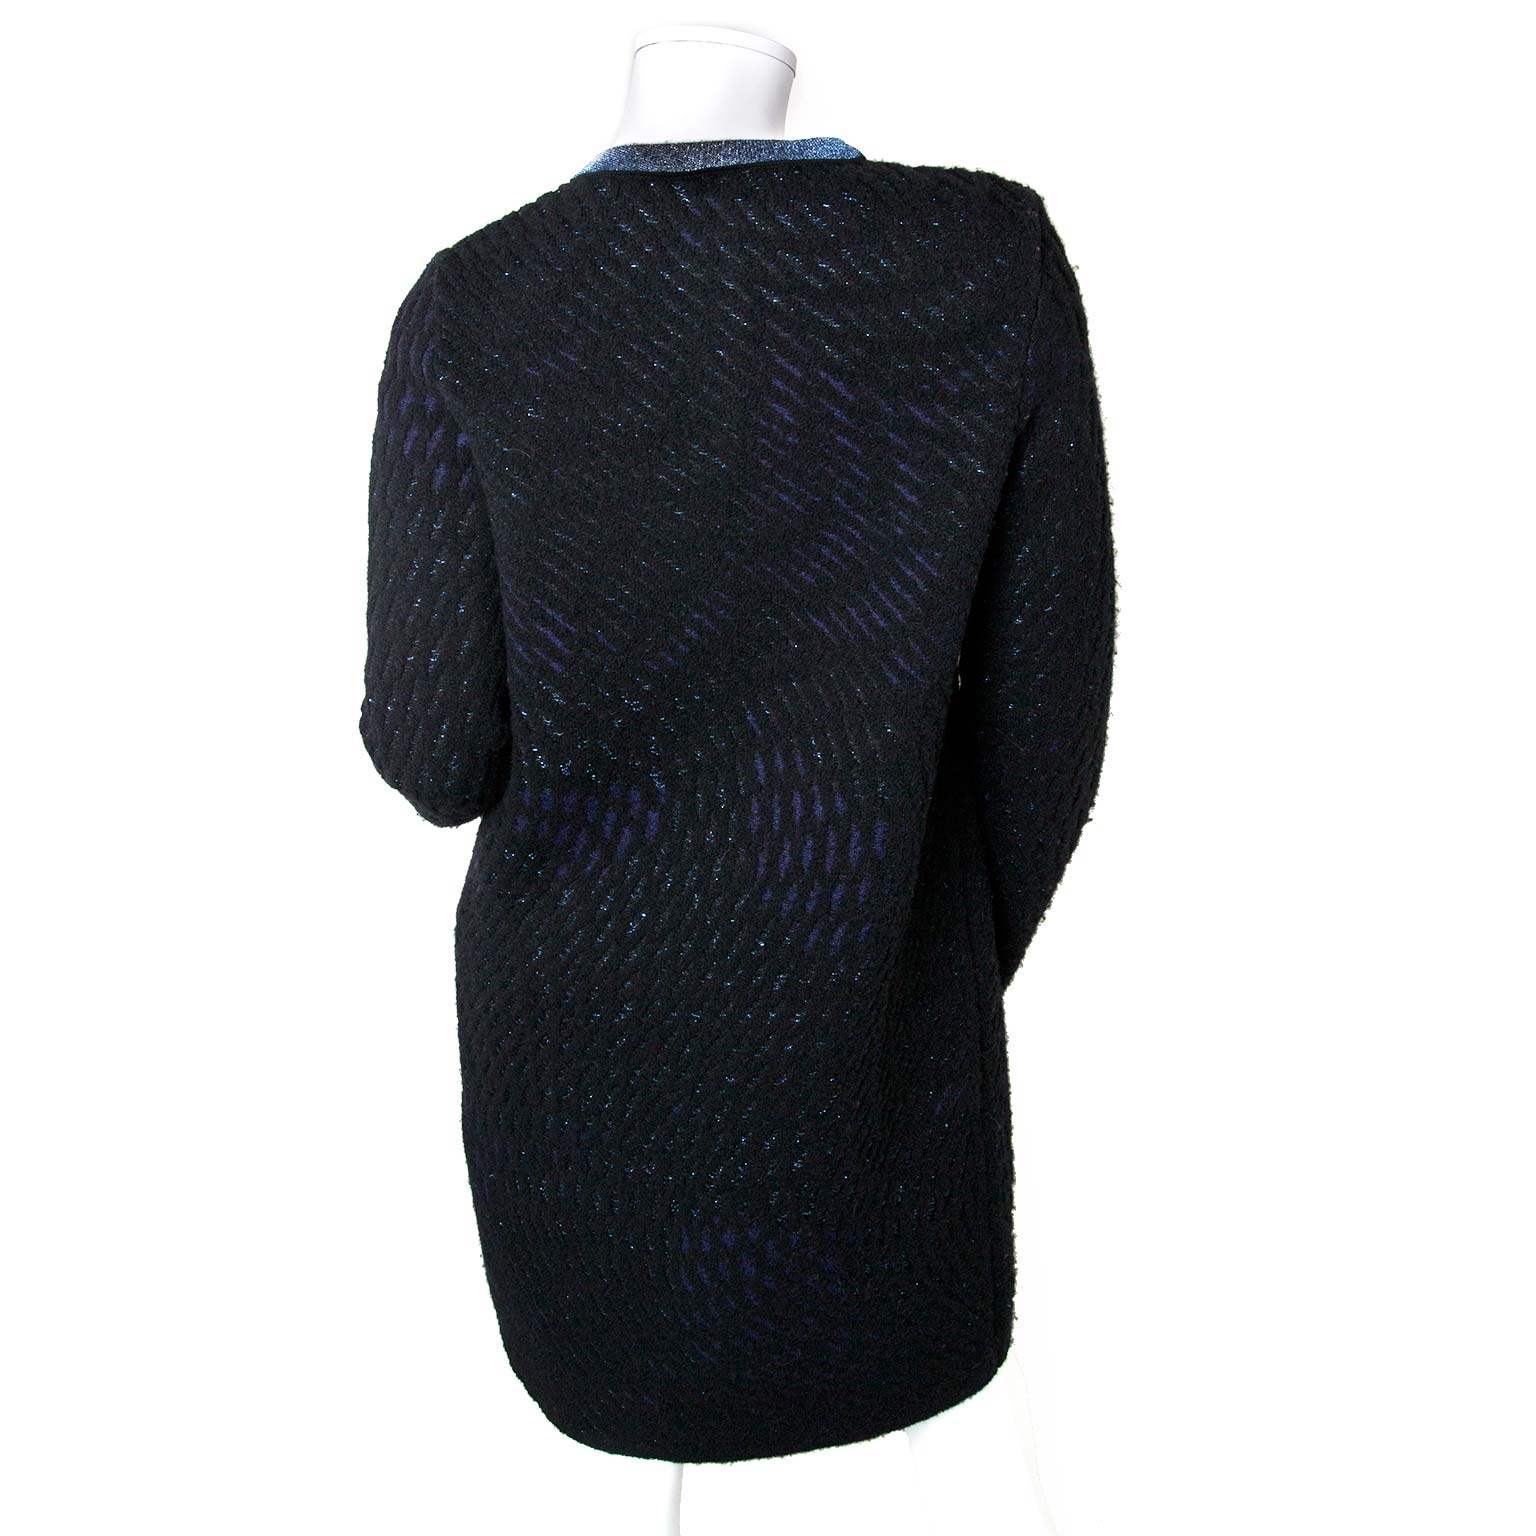 Missoni Knitted Black And Blue Cardigan - Size 40 now online at labellov.com for the best price